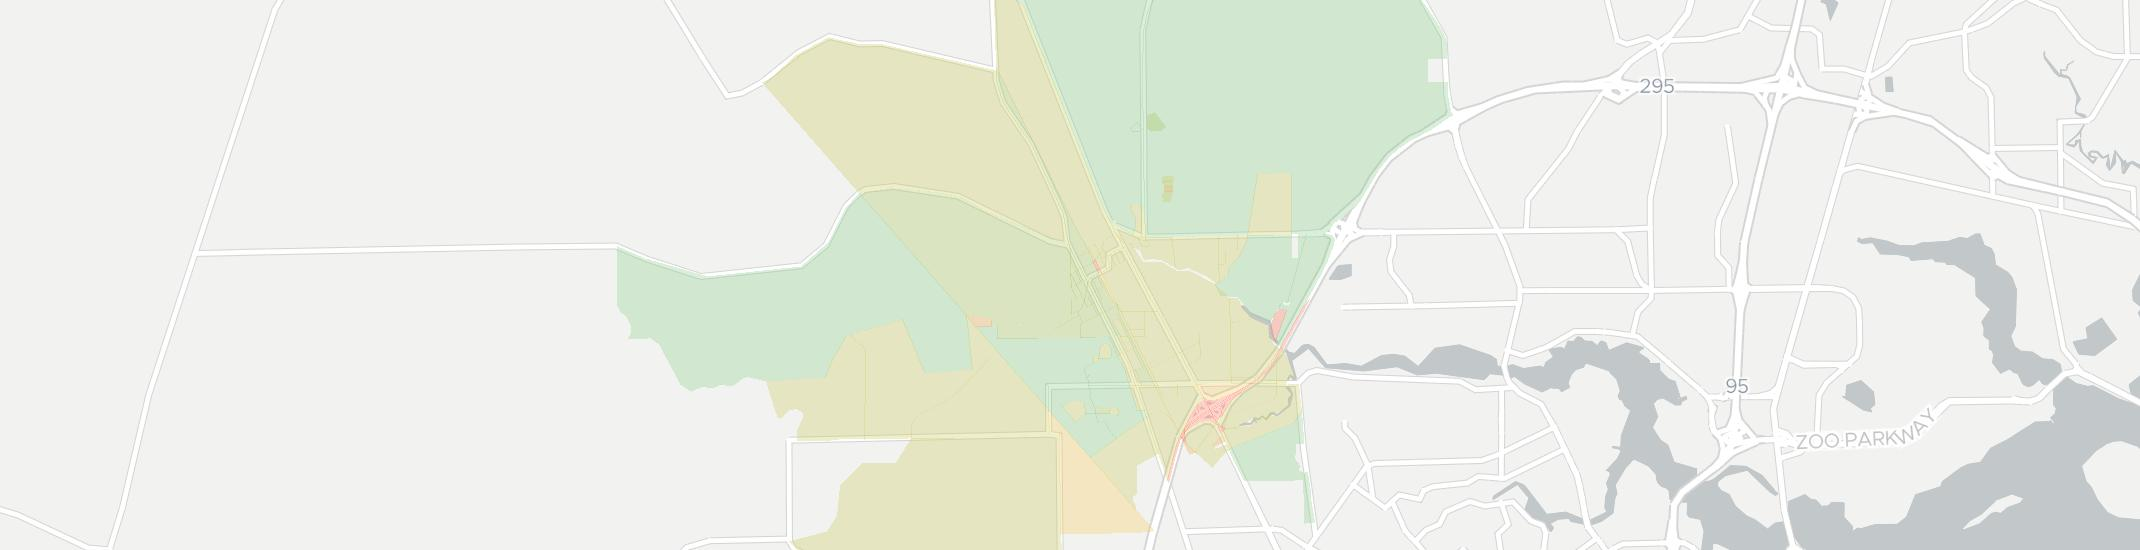 Dinsmore Internet Competition Map. Click for interactive map.